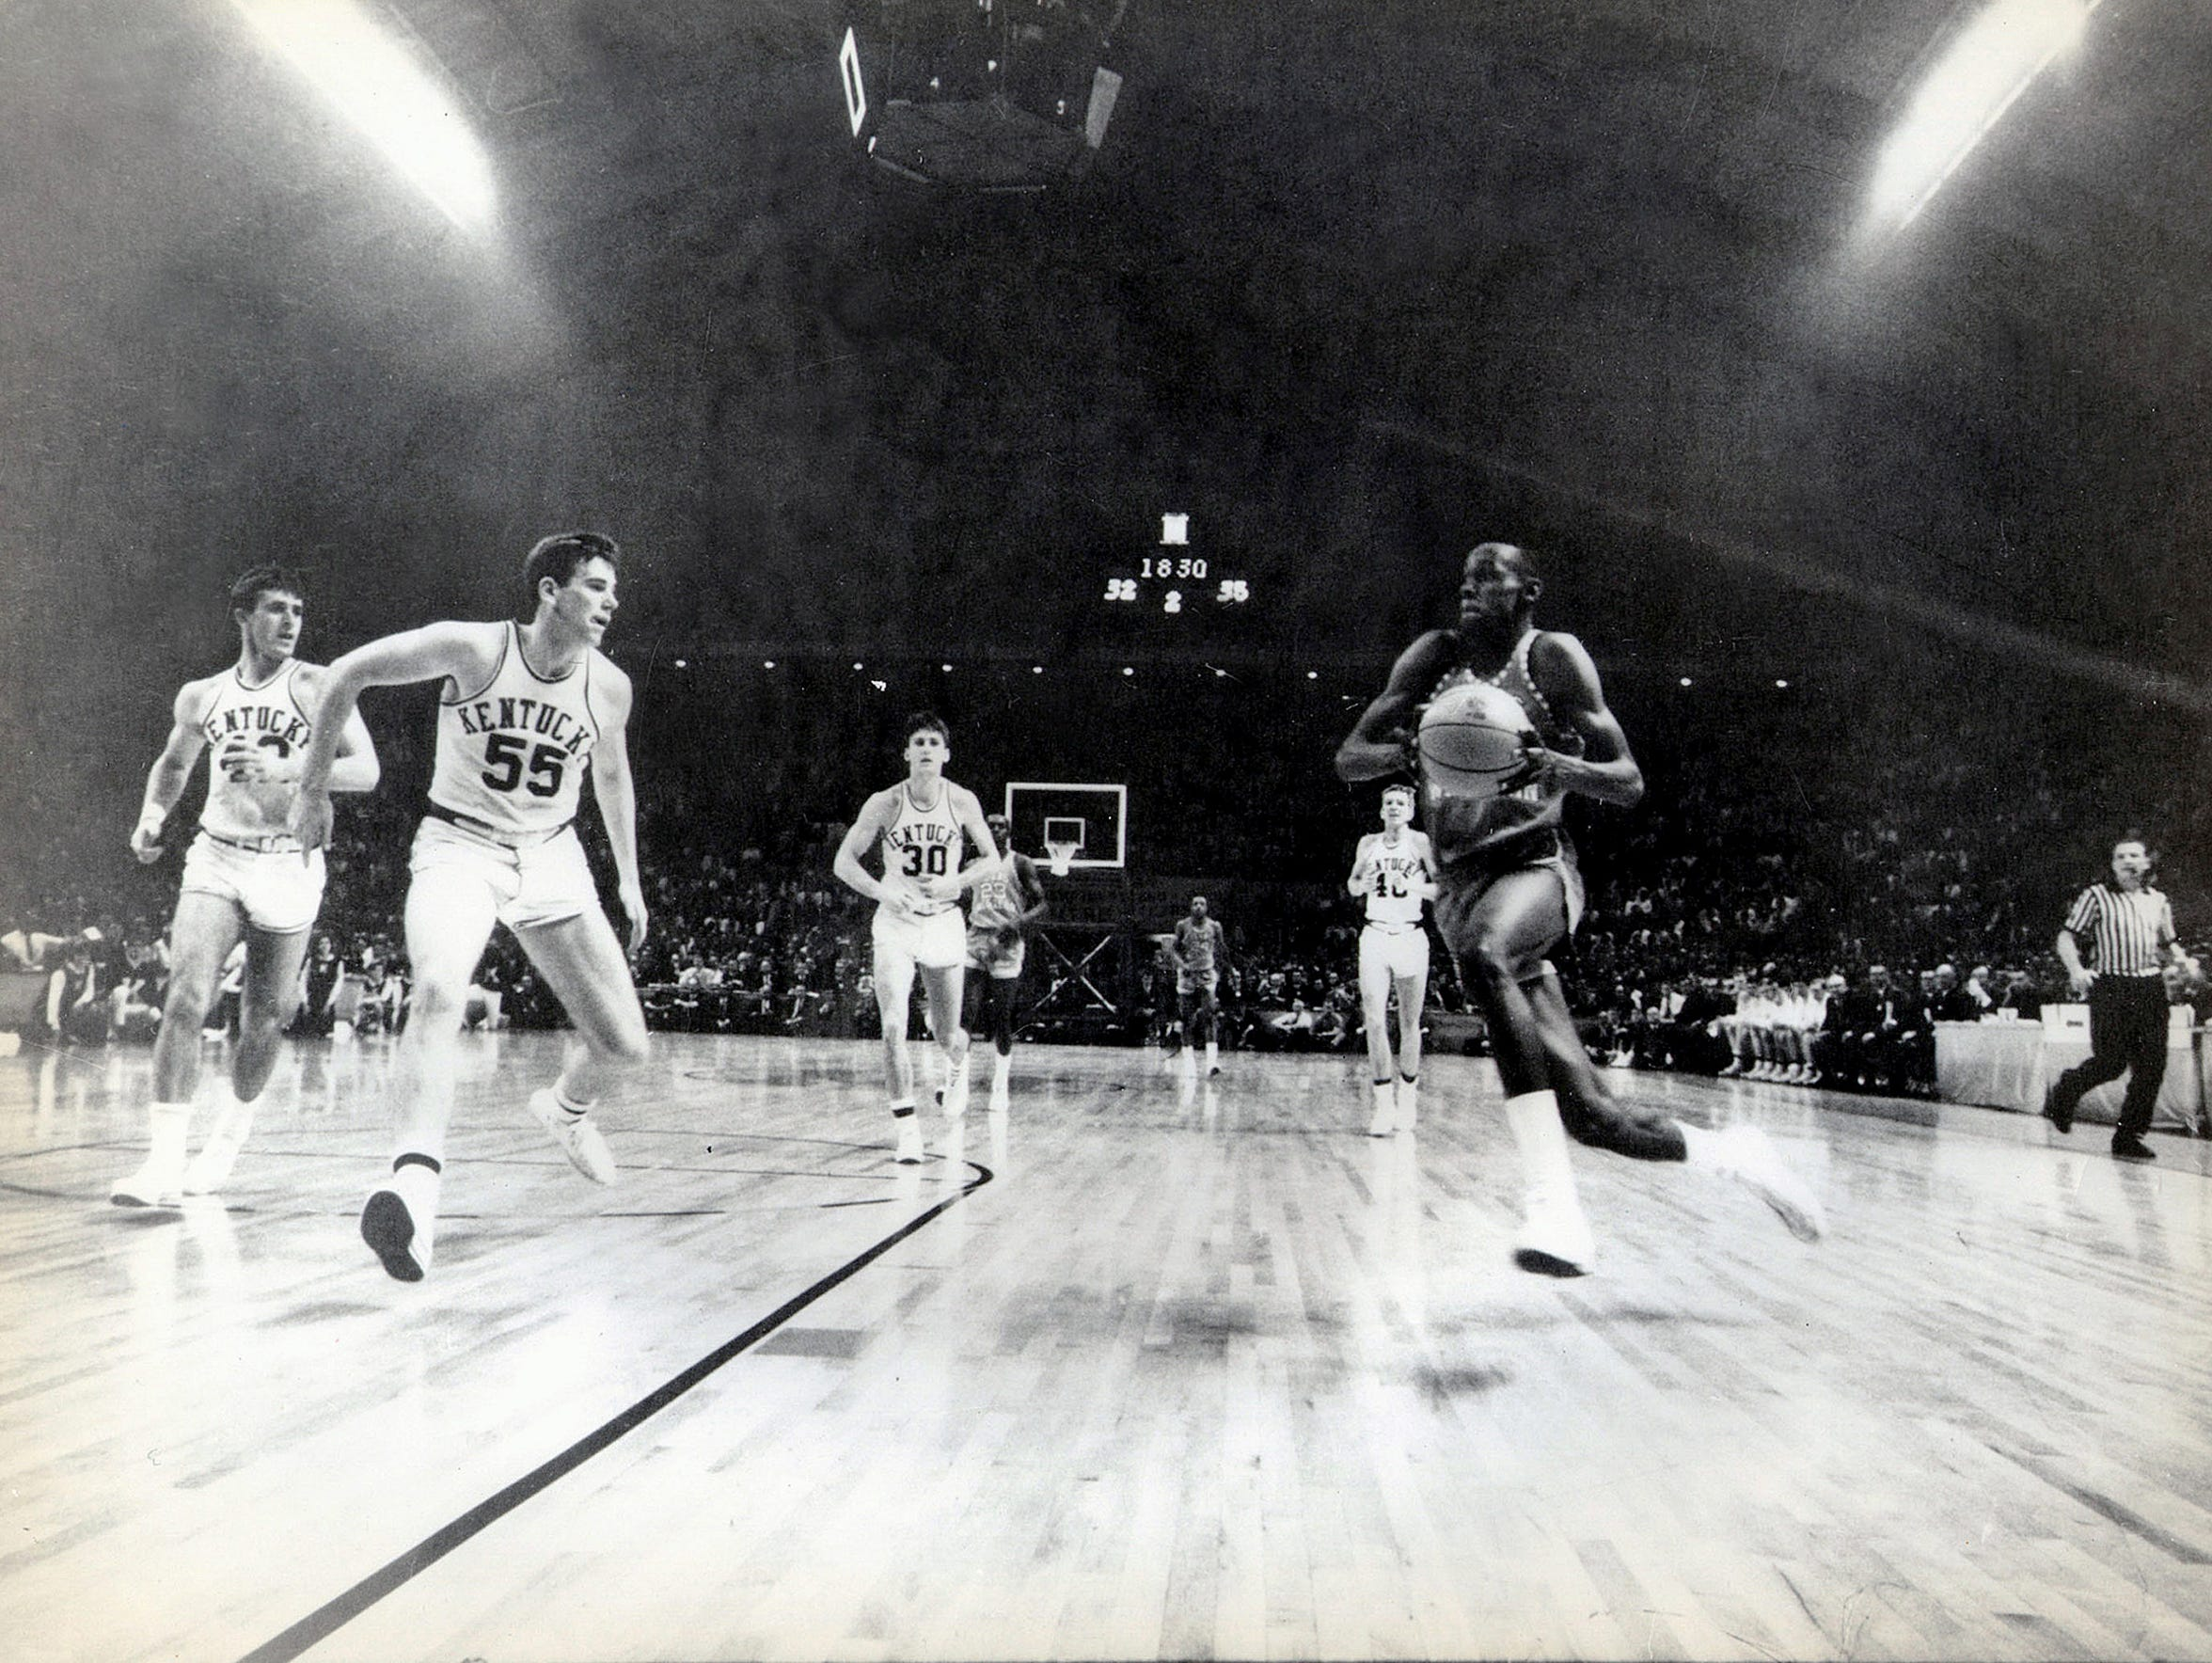 Game action during the 1966 NCAA Basketball Tournament,